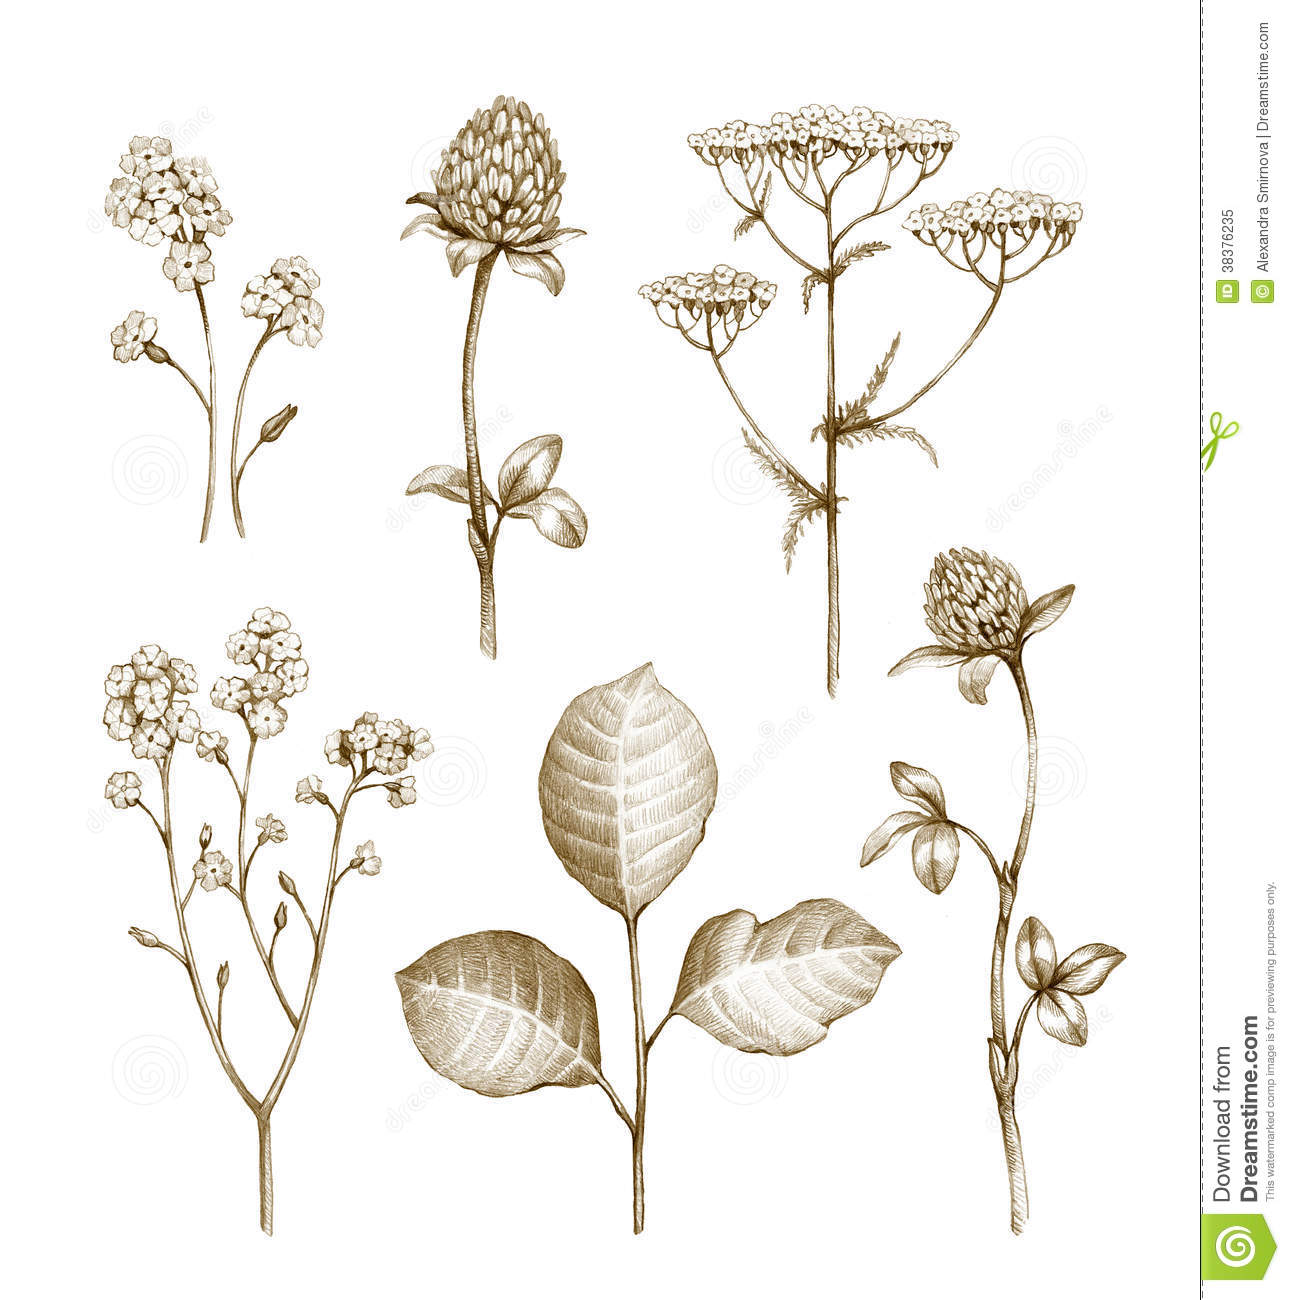 wild plants essay Published: mon, 24 apr 2017 the main objective for this experiment was to examine the effects of gibberellic acid which is a plant hormone on different genotypes of a plant called brasscia rapa, which included wild type, petite, elongate, and rosette.